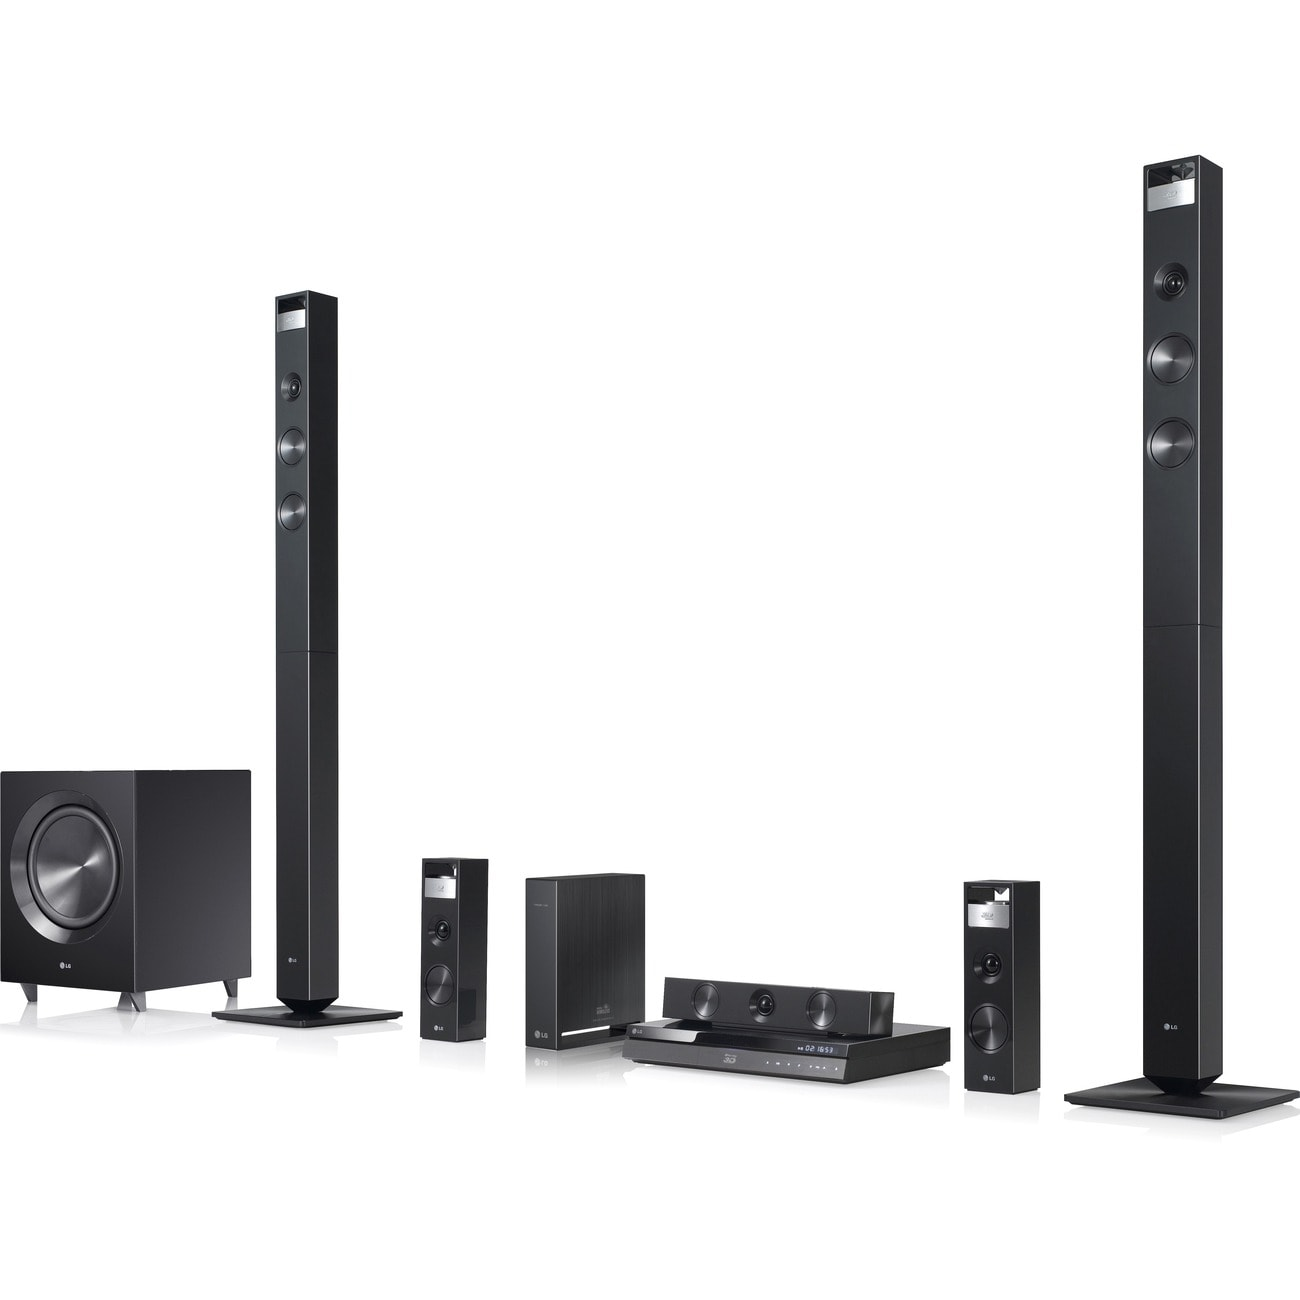 LG BH9420PW 7.1 3D Home Theater System